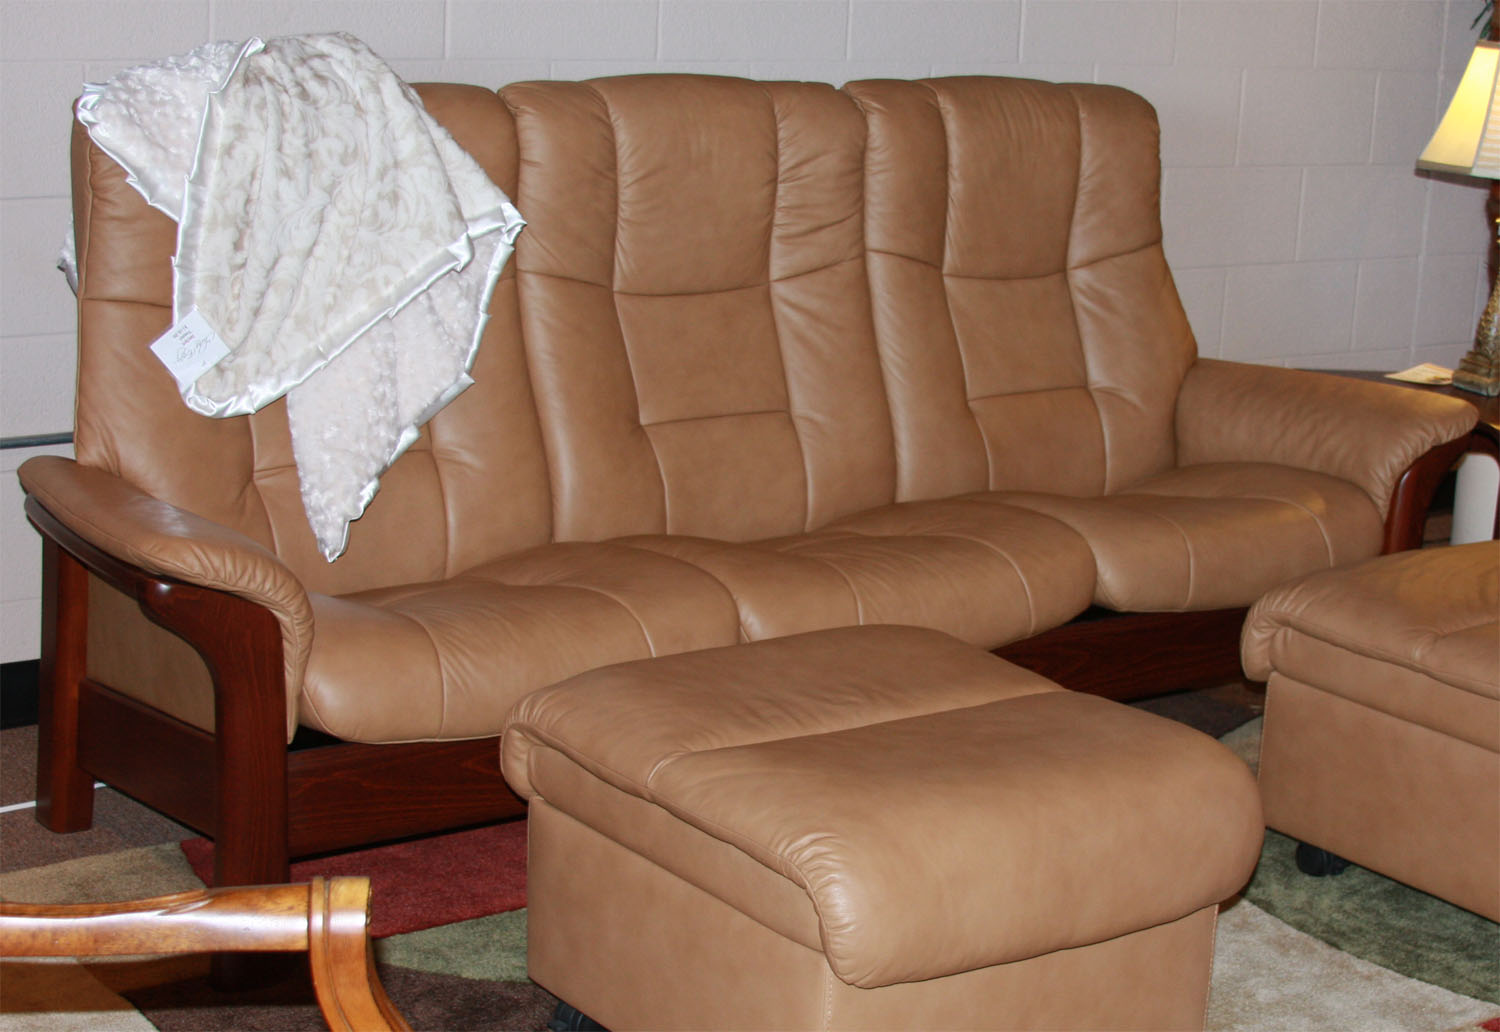 Stressless Buckingham 3 Seat High Back Sofa Paloma Taupe Color ...